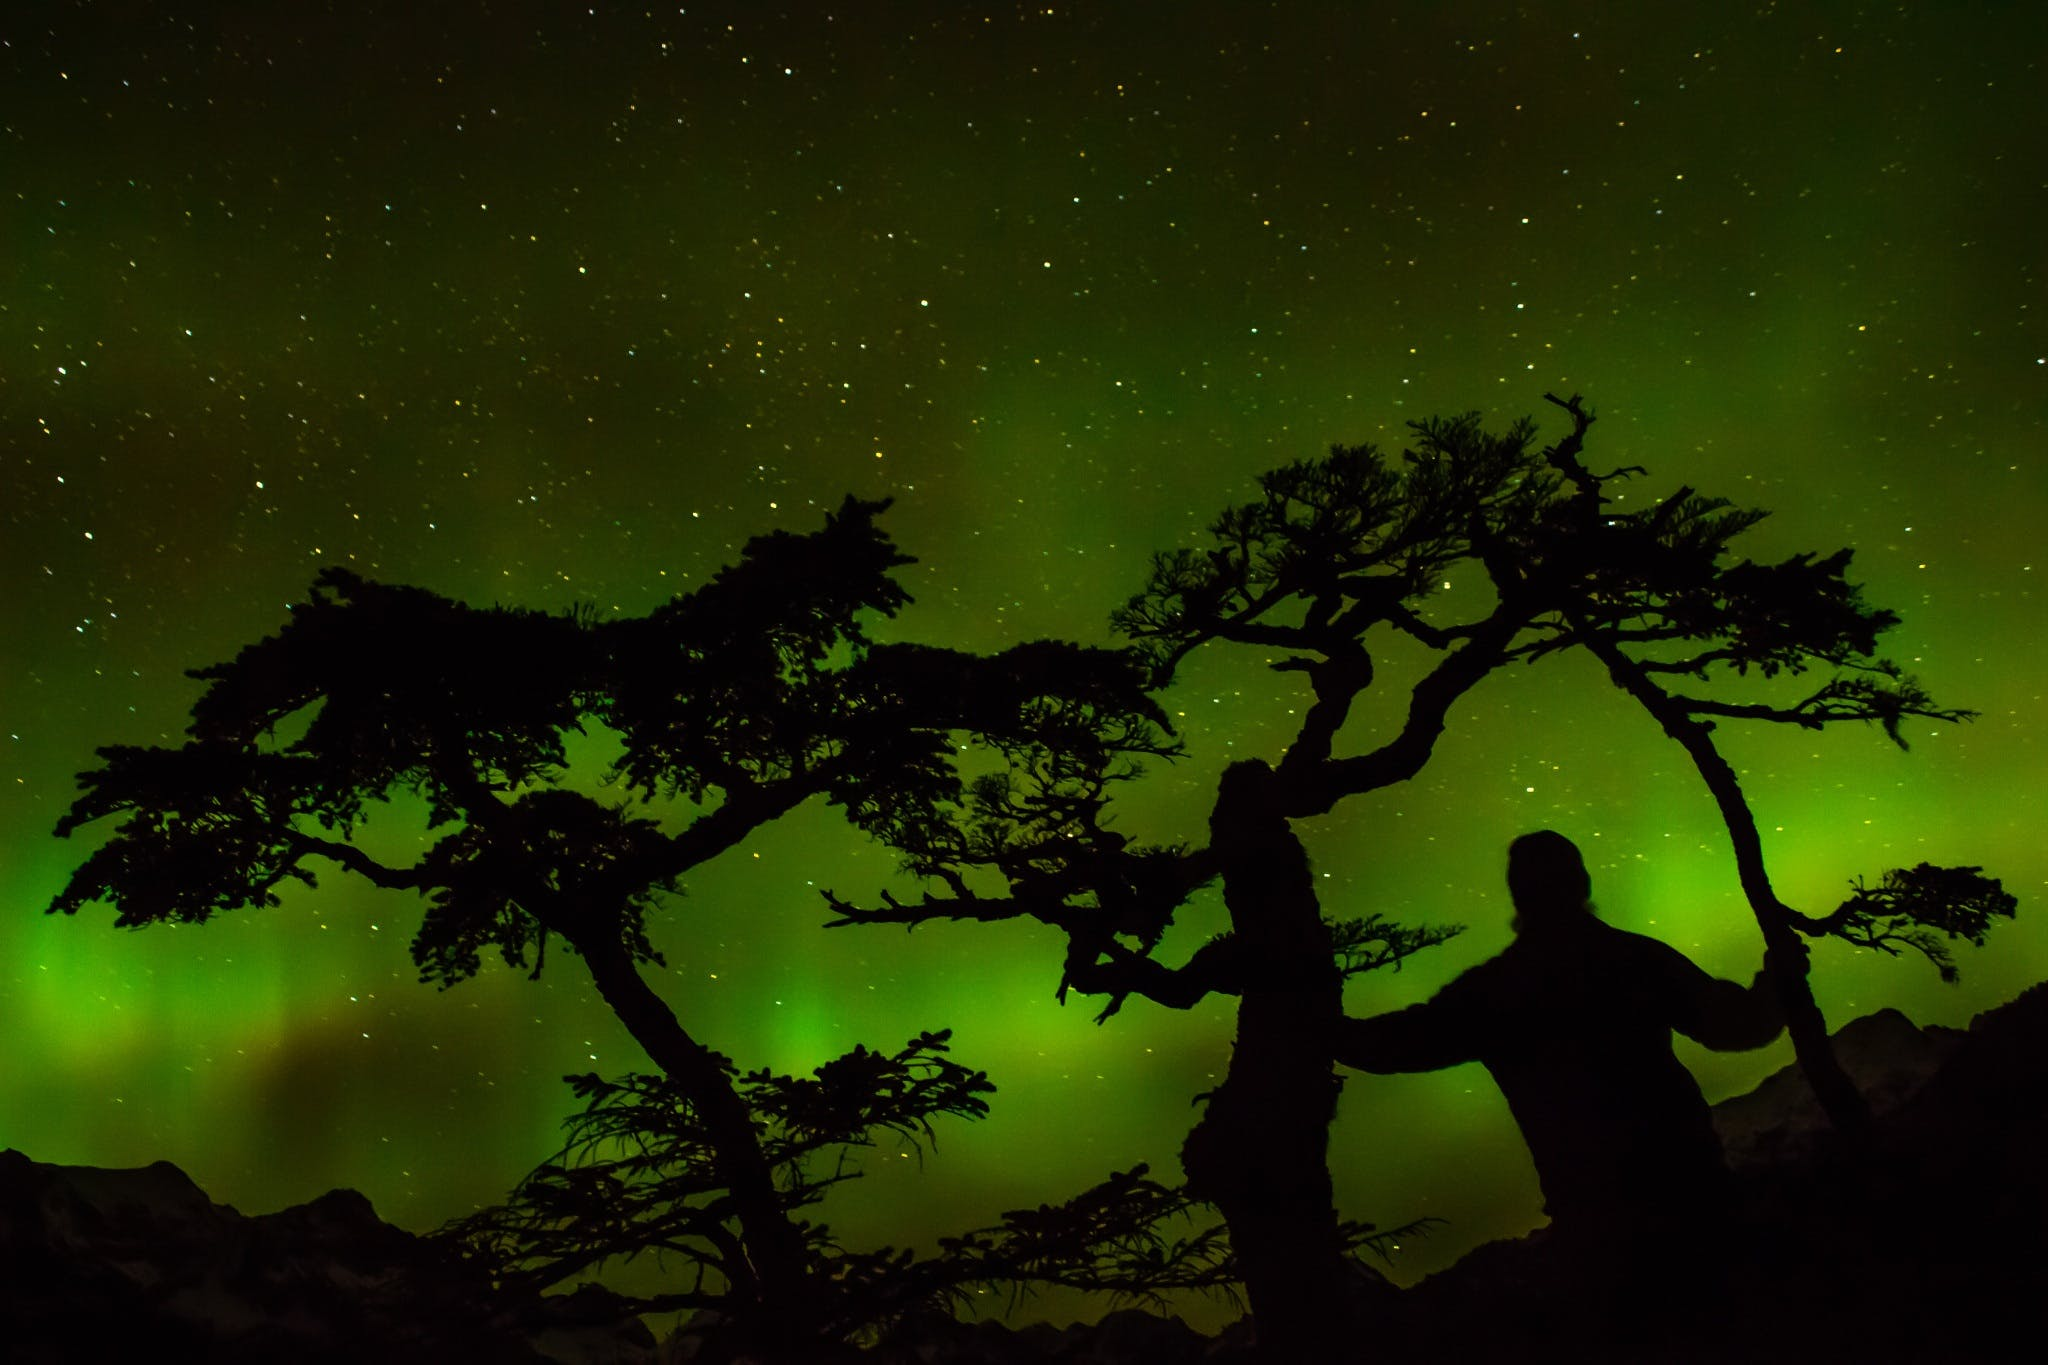 Green Aurora Light